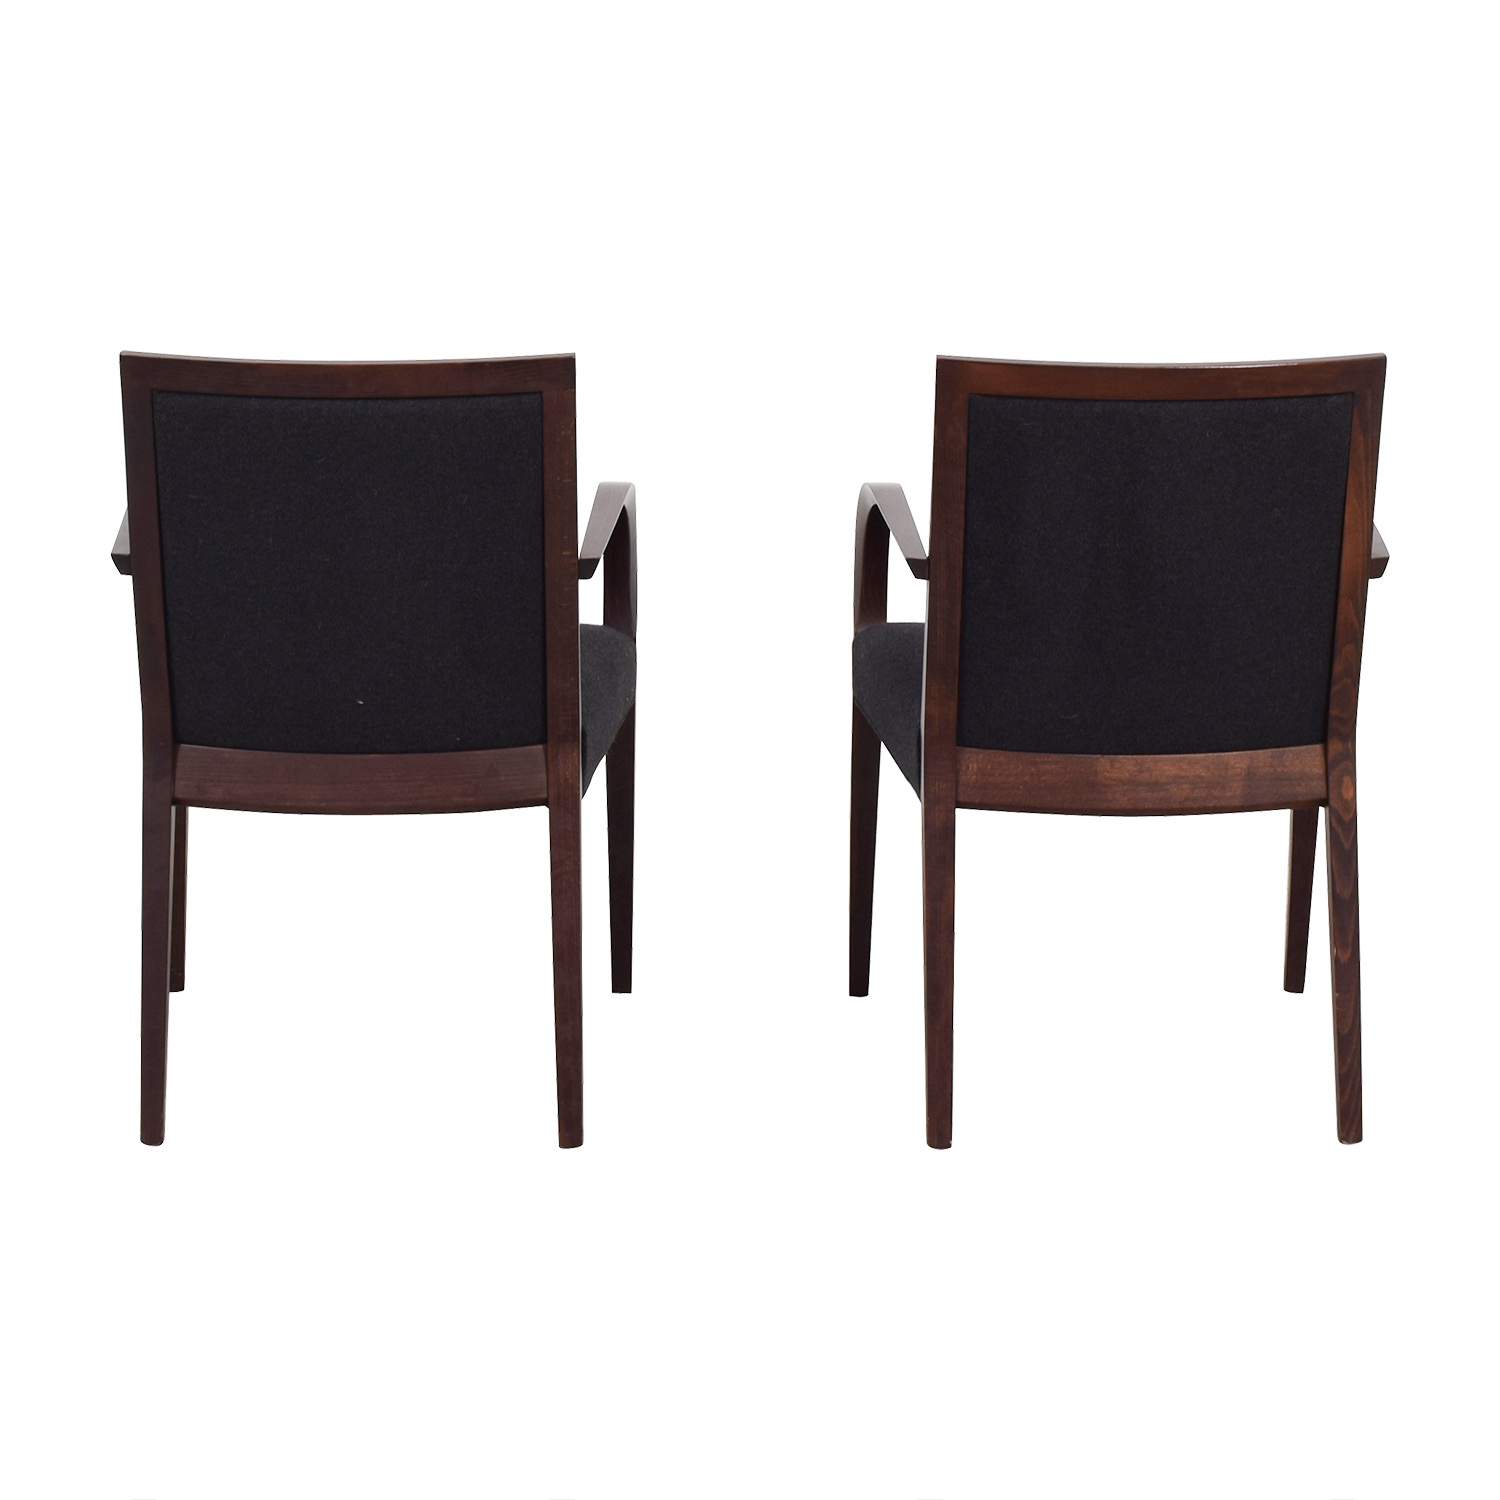 shop Potocco Potocco Nacy Accent Chairs online